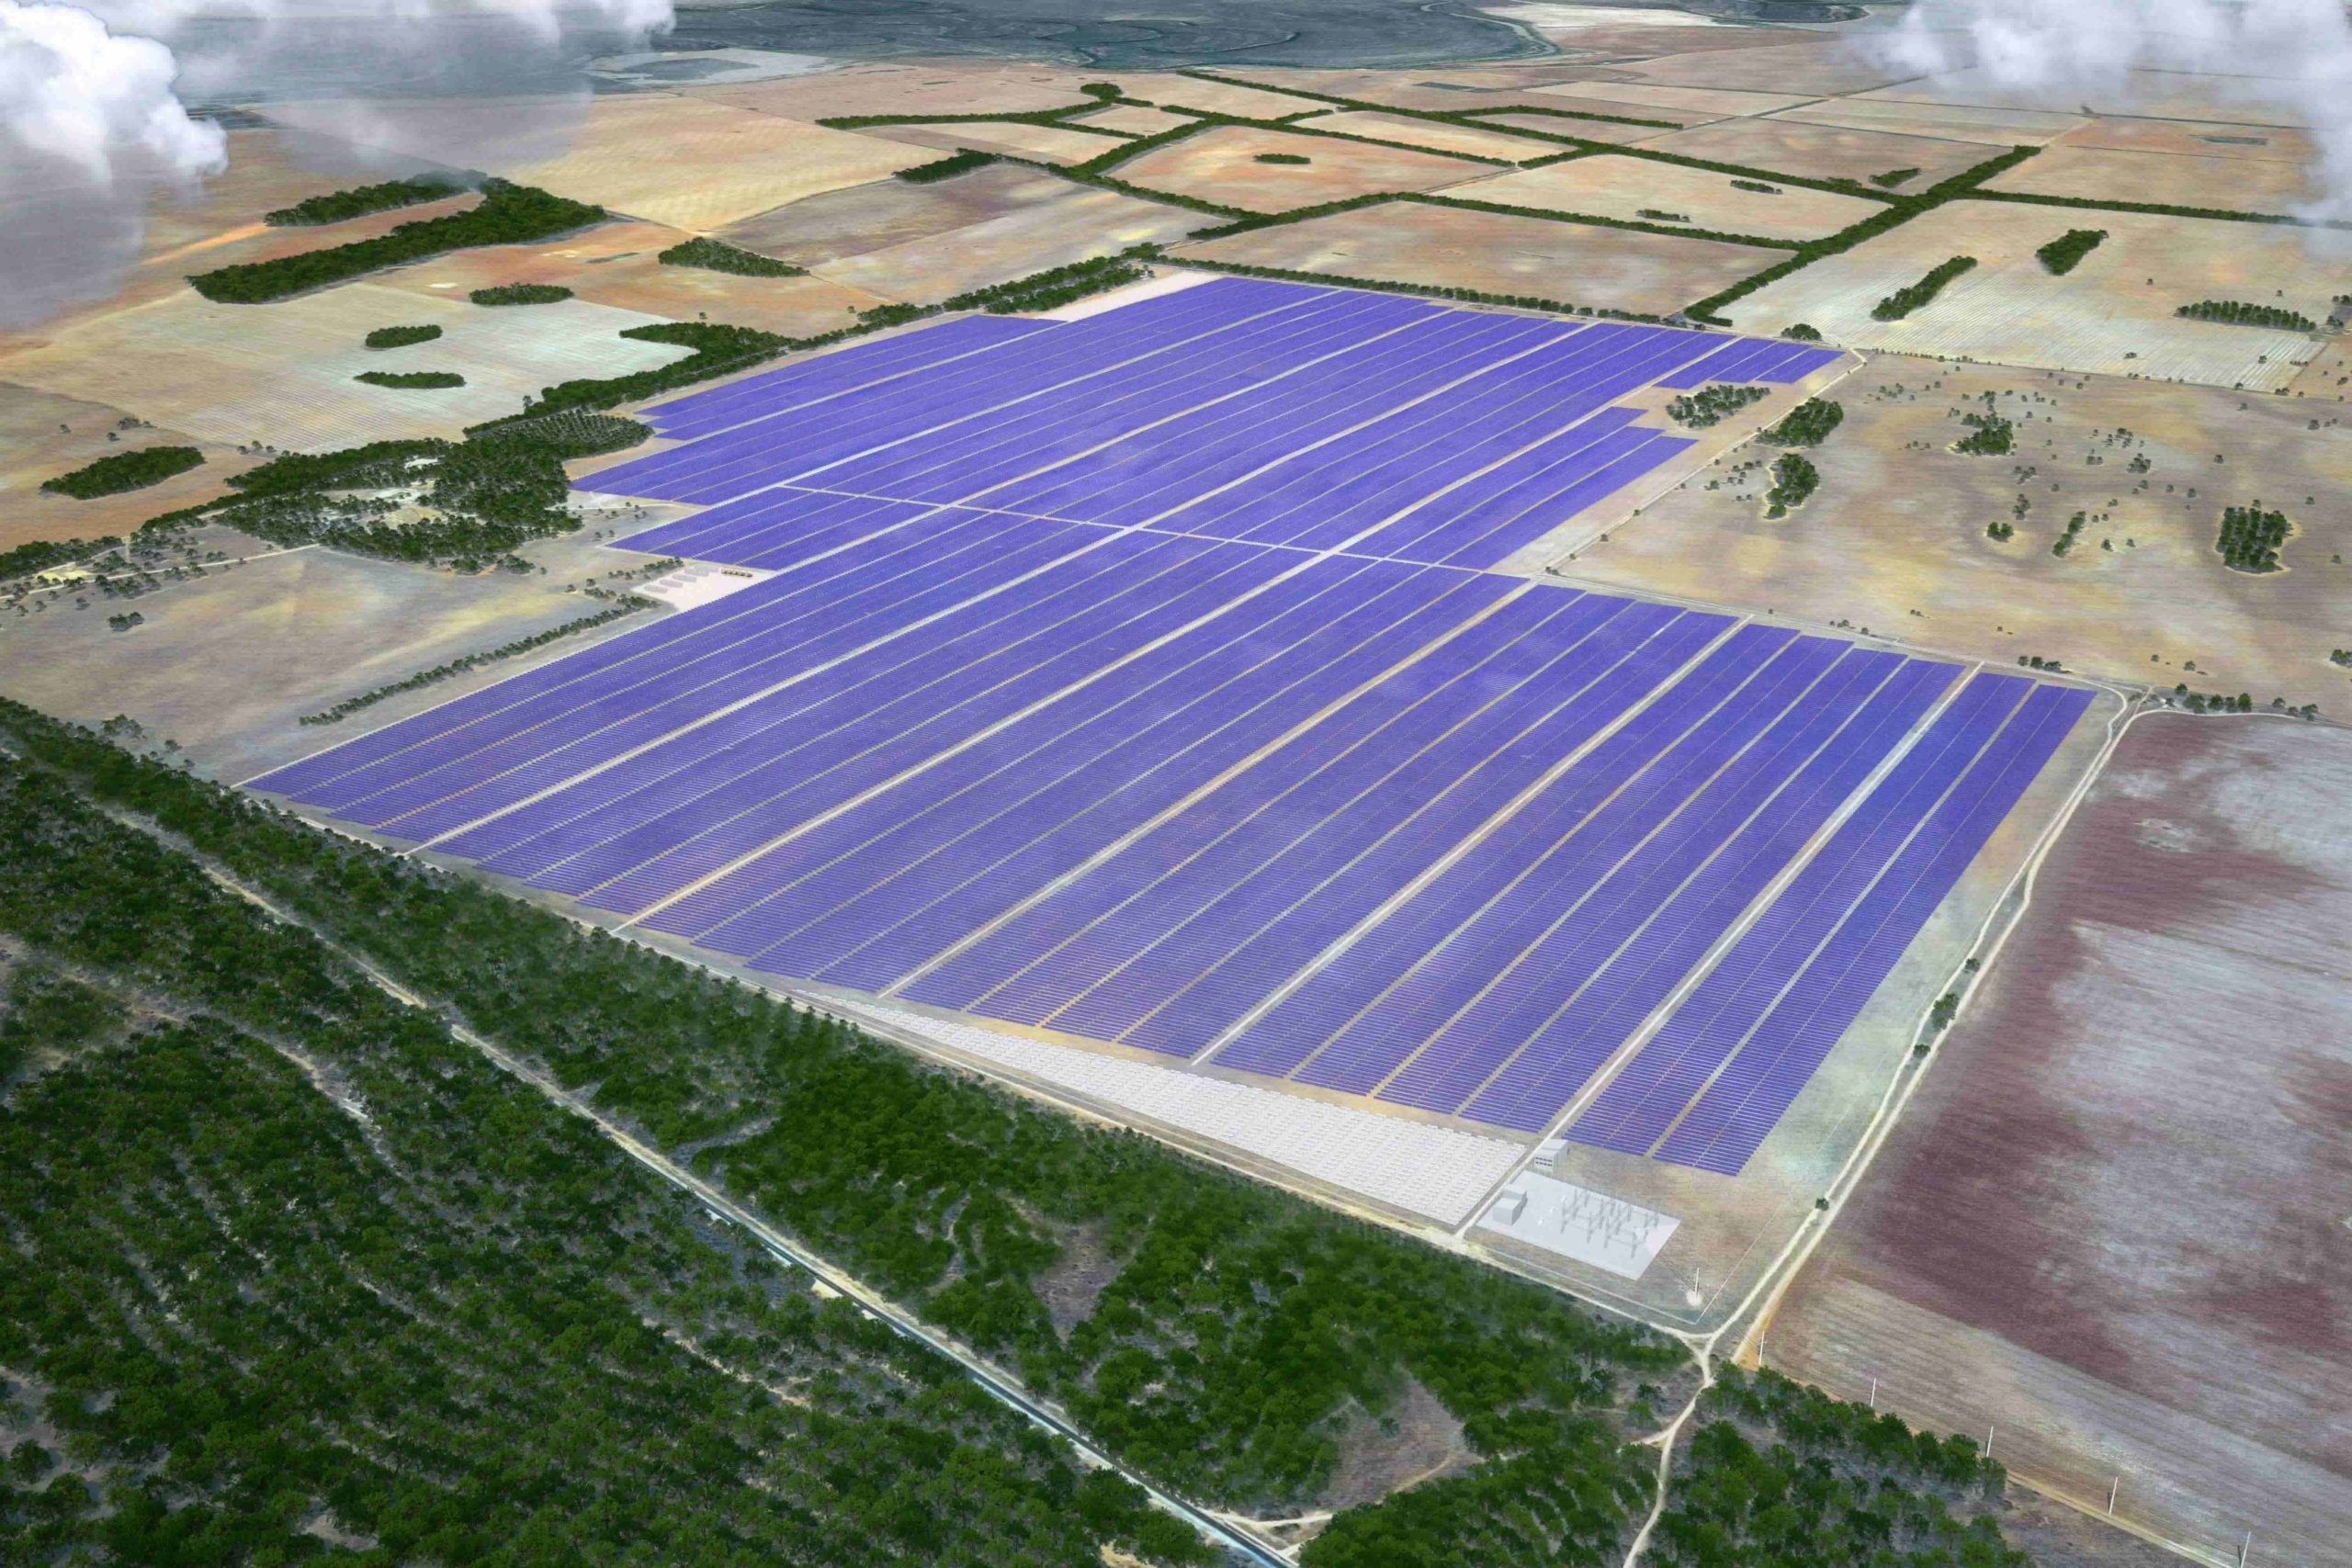 The PPA is for the supply of up to 800,000MWh of renewable energy per annum for 15 years. Credit: Maoneng